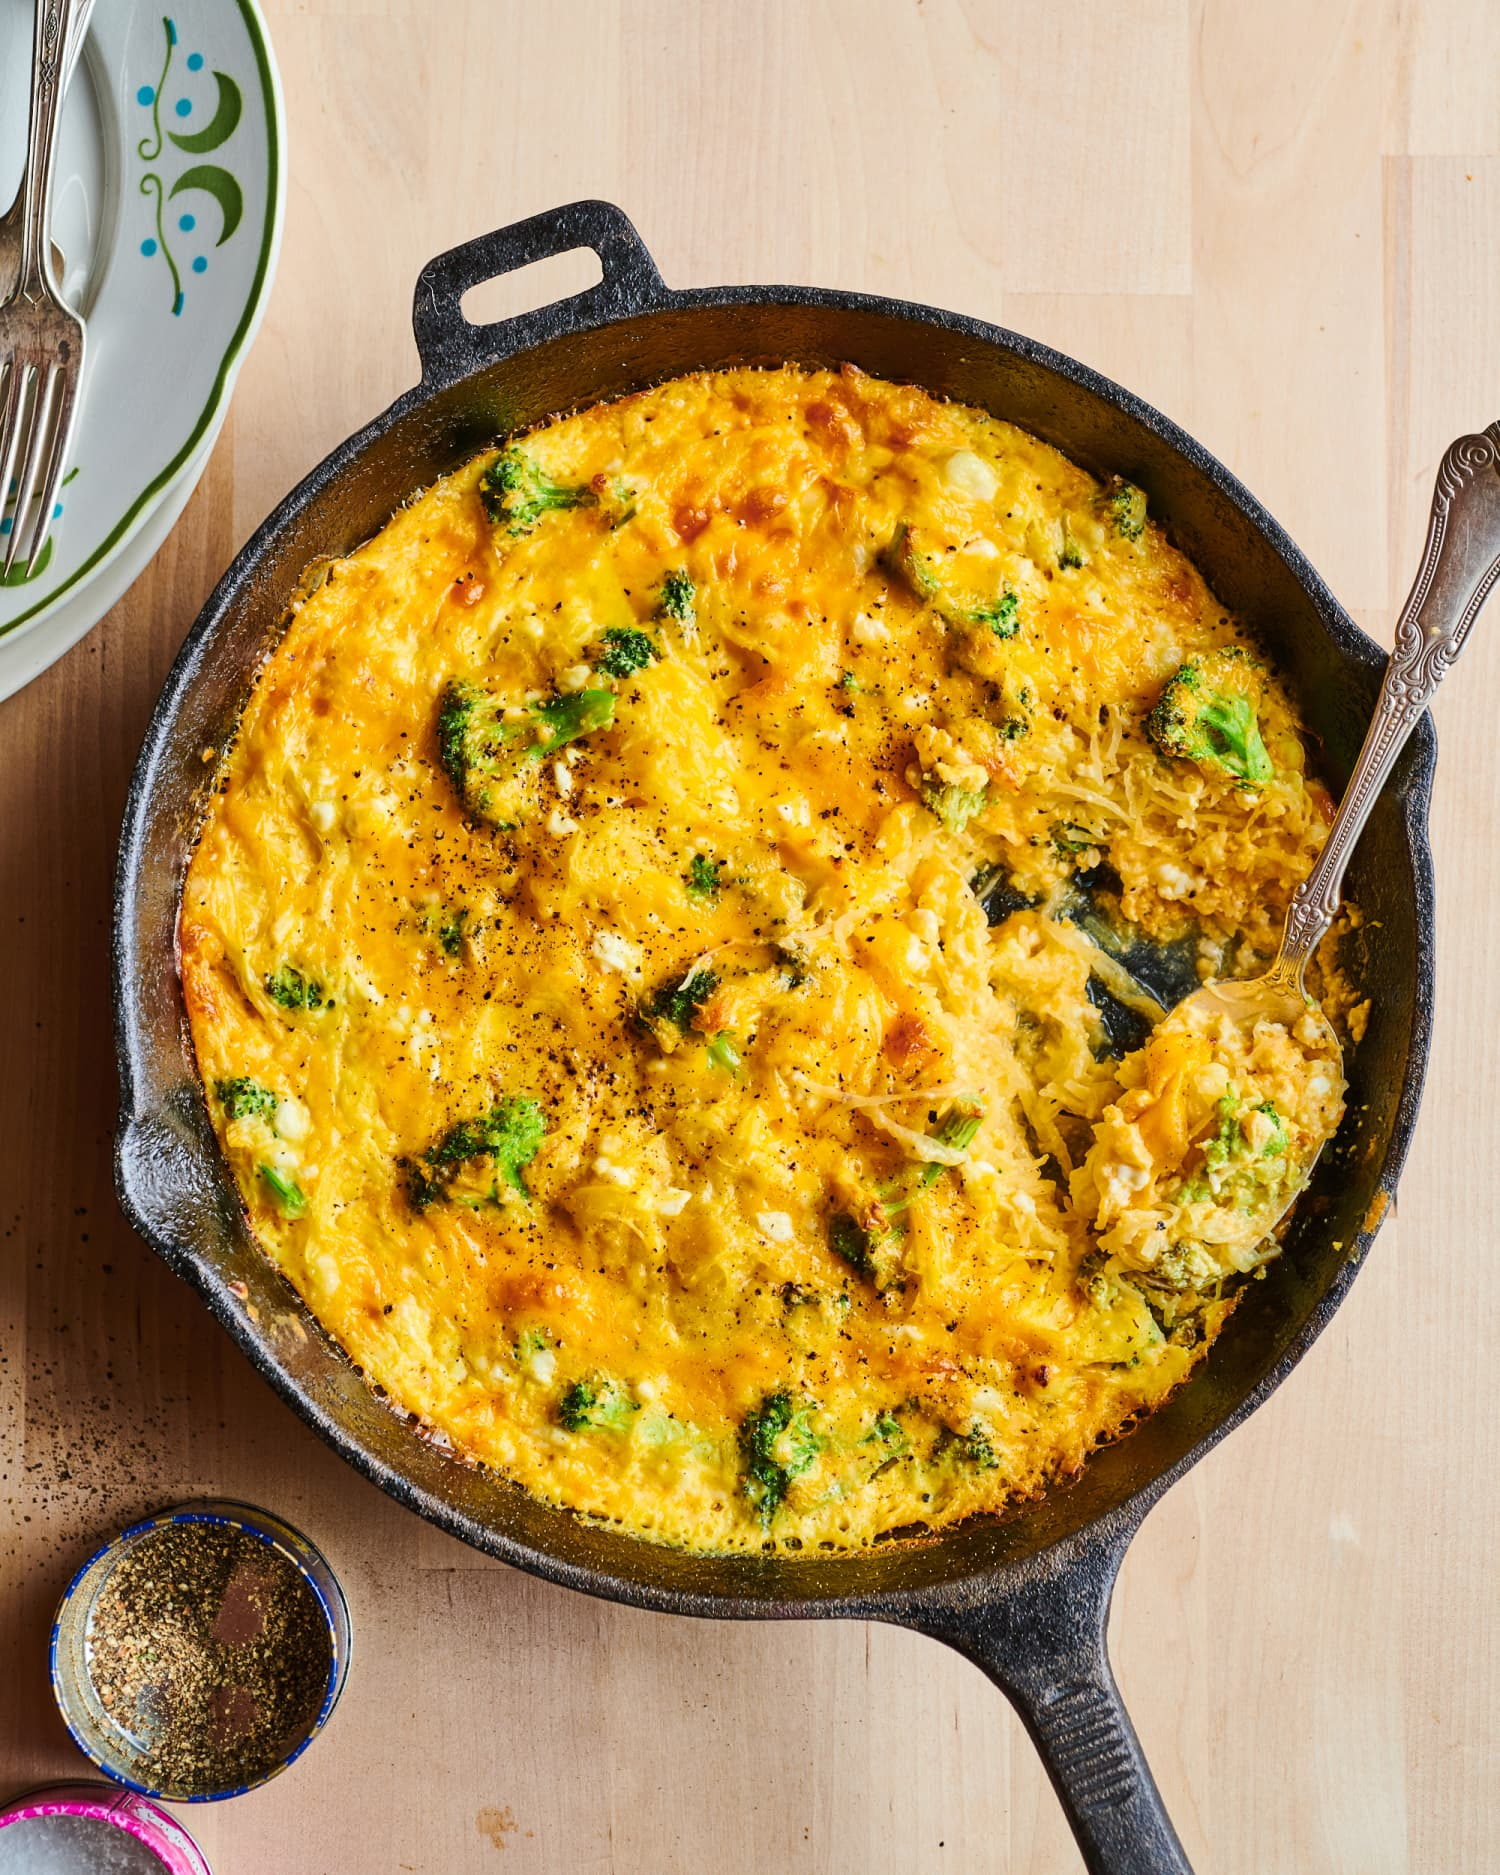 Broccoli and Cheese Spaghetti Squash Casserole Will Be a Weeknight Win